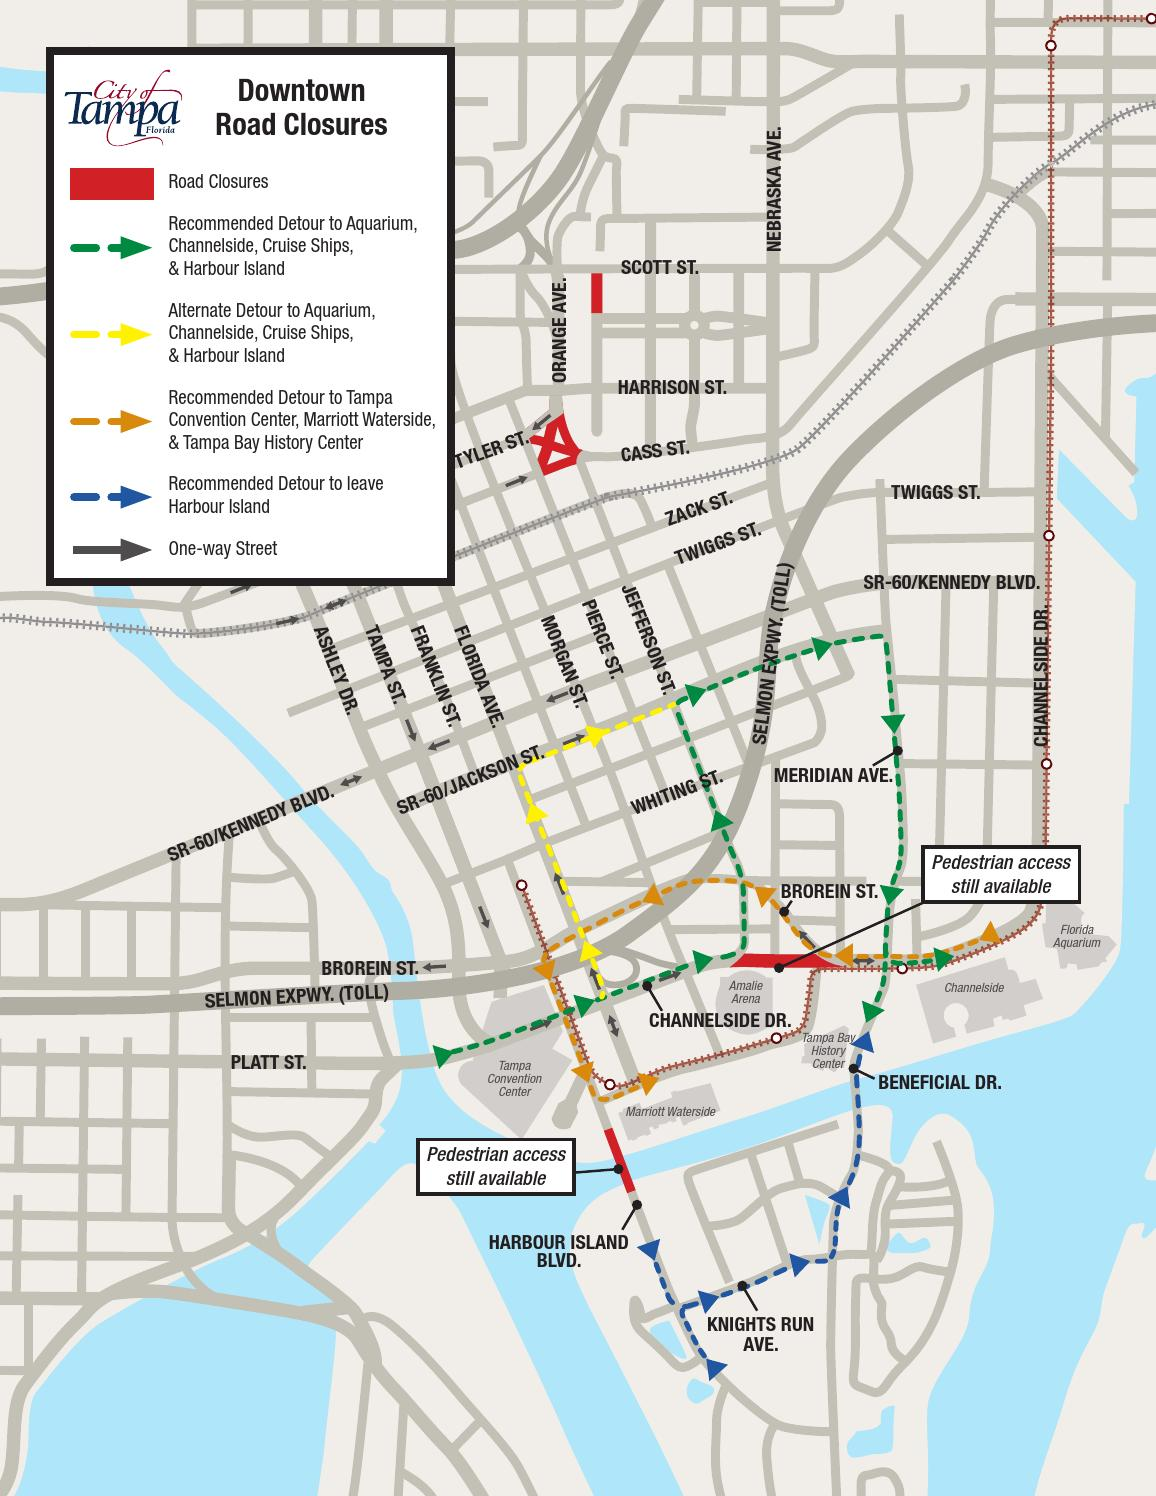 Tampa Channelside Drive downtown road closures map 1 by WFLA